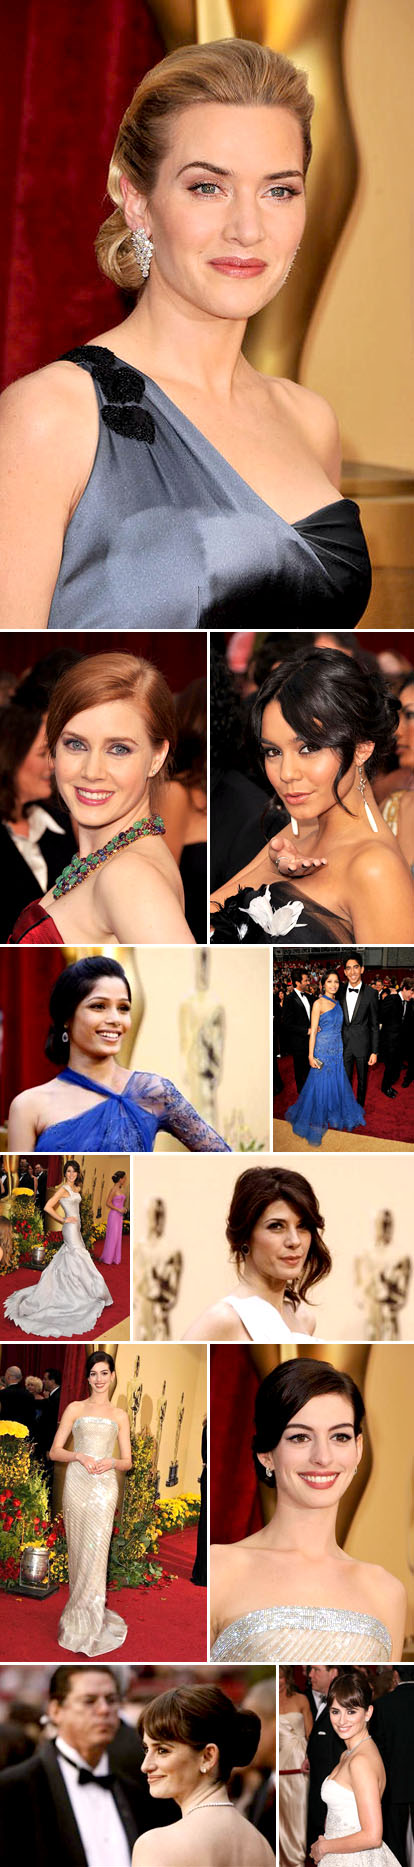 Hairstyles and fashion from the 2009 Academy Awards red carpet, bridal inspiration, Kate Winslet,Freida Pinto, Anne Hathaway, Penelope Cruz, Amy Adams, Vanessa Hudgens and Marisa Tomei